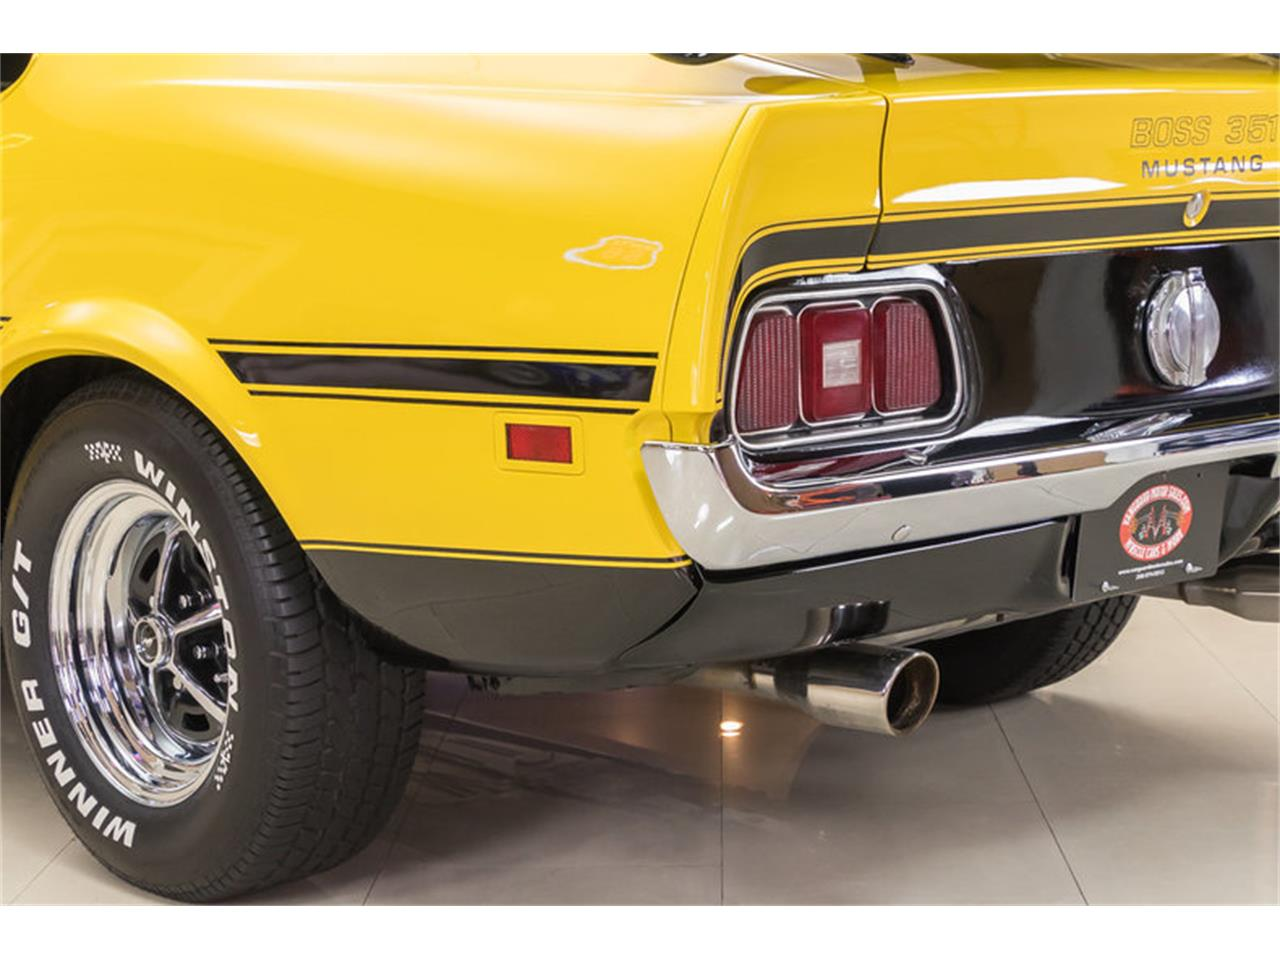 Large Picture of '72 Ford Mustang Boss 351 Recreation located in Plymouth Michigan - $34,900.00 - JGDO